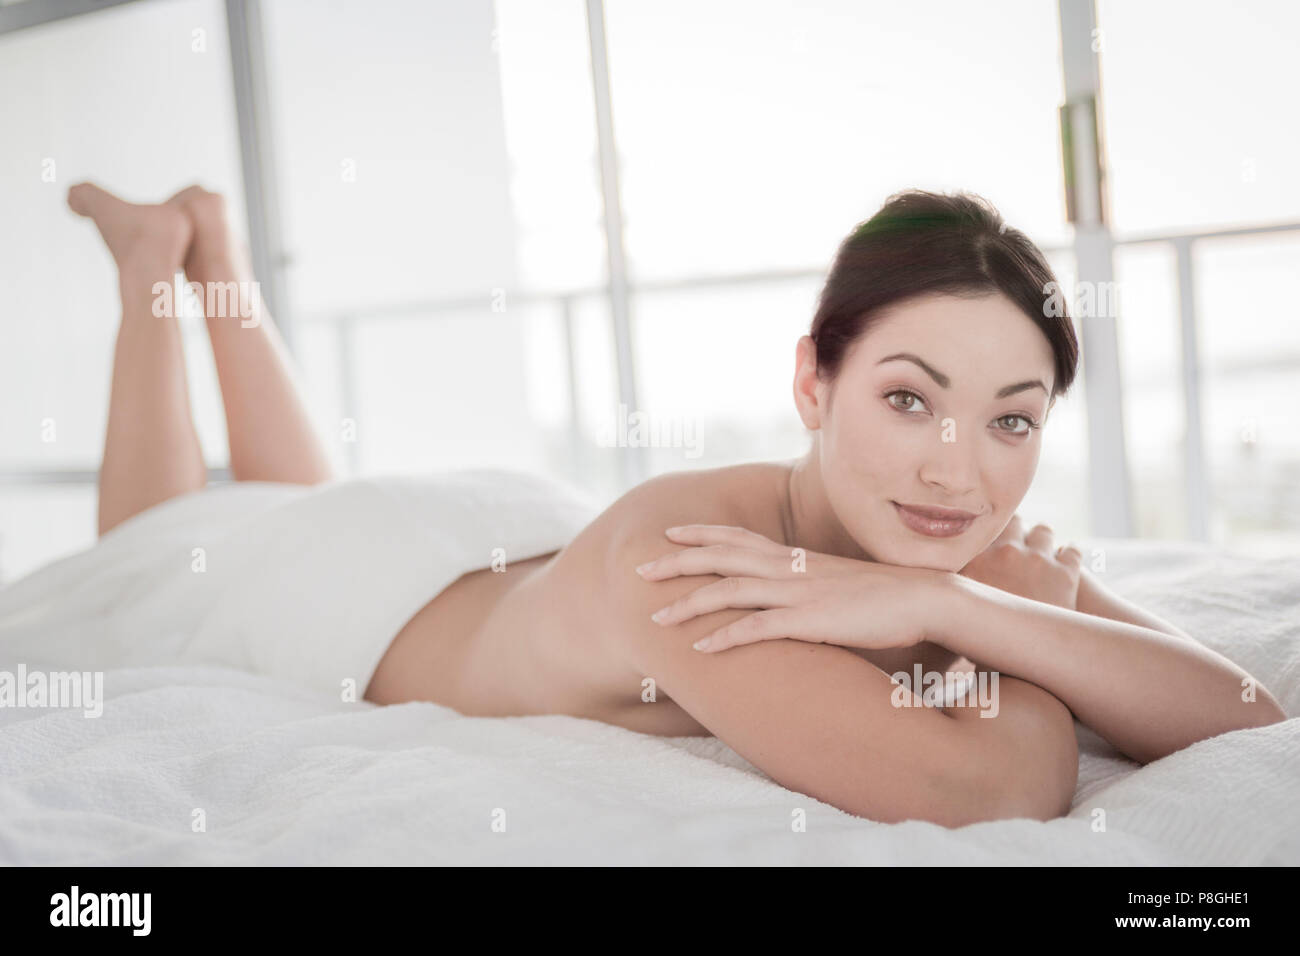 Shirtless woman lying on bed Stock Photo